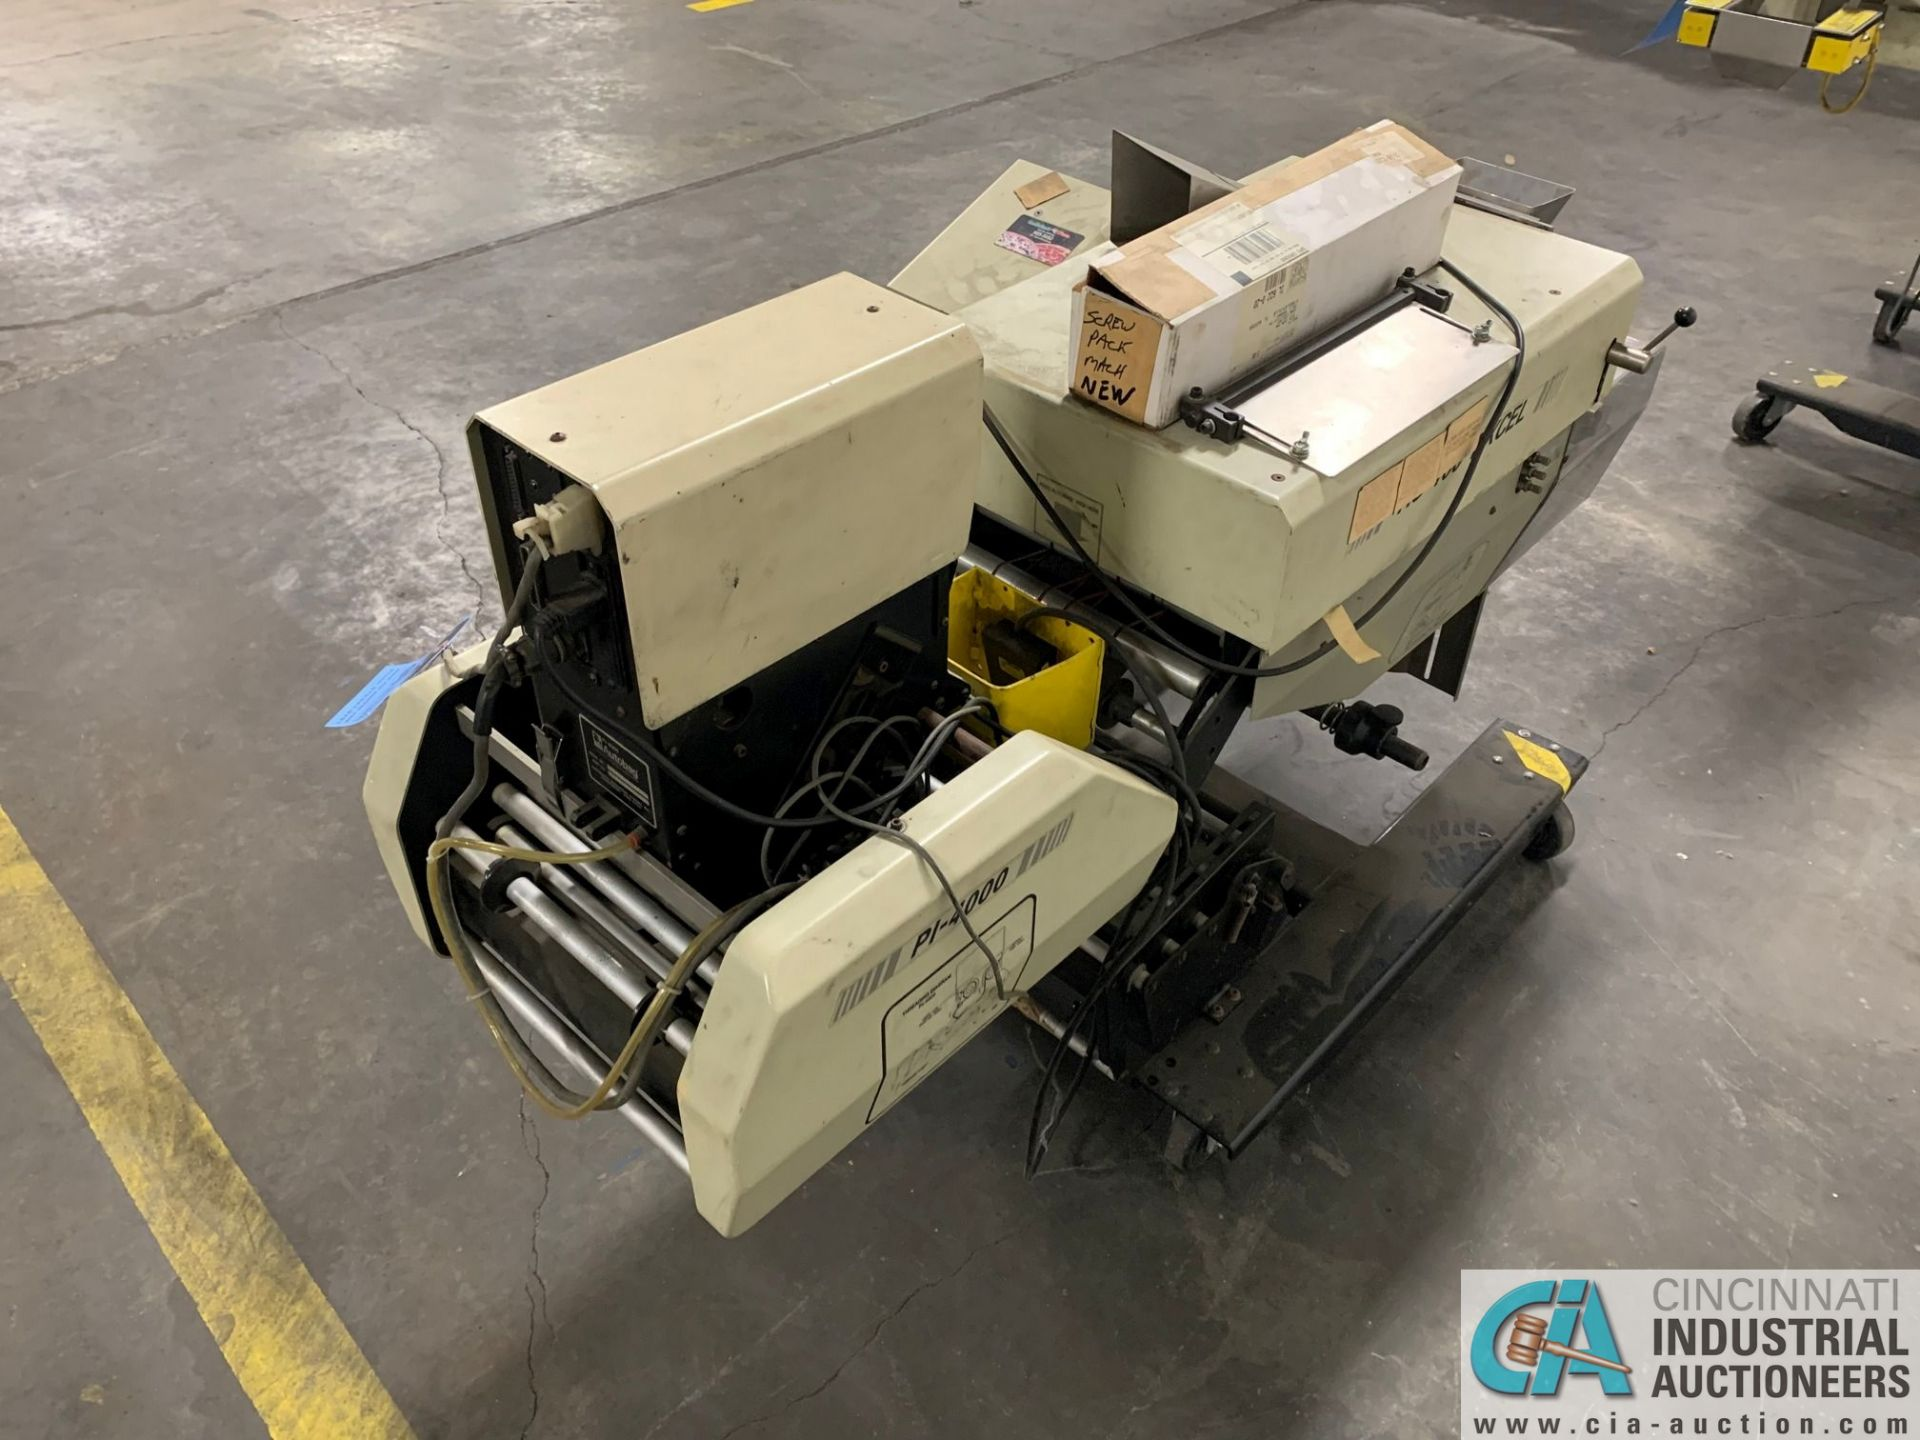 AUTOBAG MODEL HS-100 EXCEL POLY BAGGING MACHINE; S/N 2072896019, WITH P1-4000 AUTO LABEL MACHINE ( - Image 7 of 7